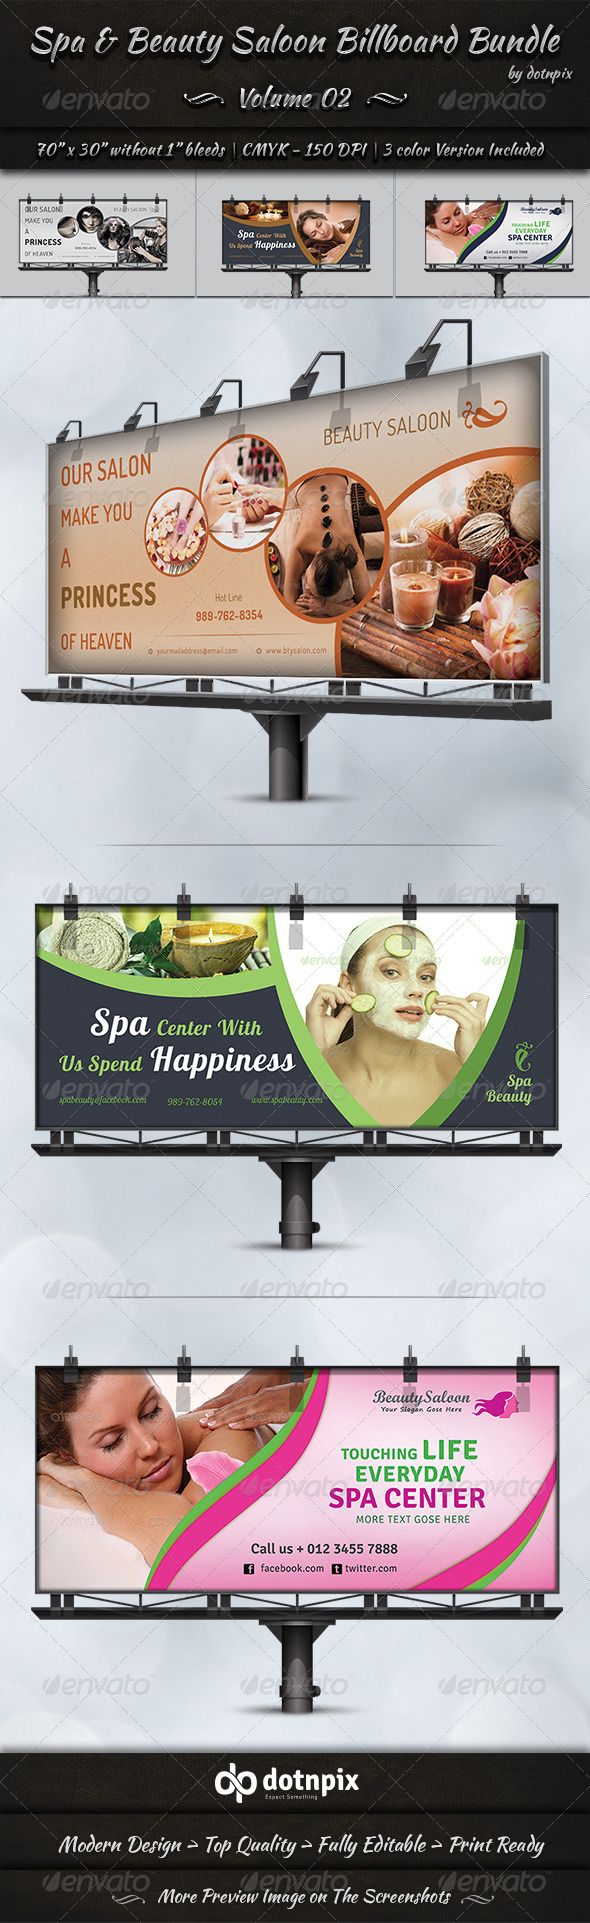 Spa & Beauty Saloon Billboard Bundle is a designed for Any types of companies. I...